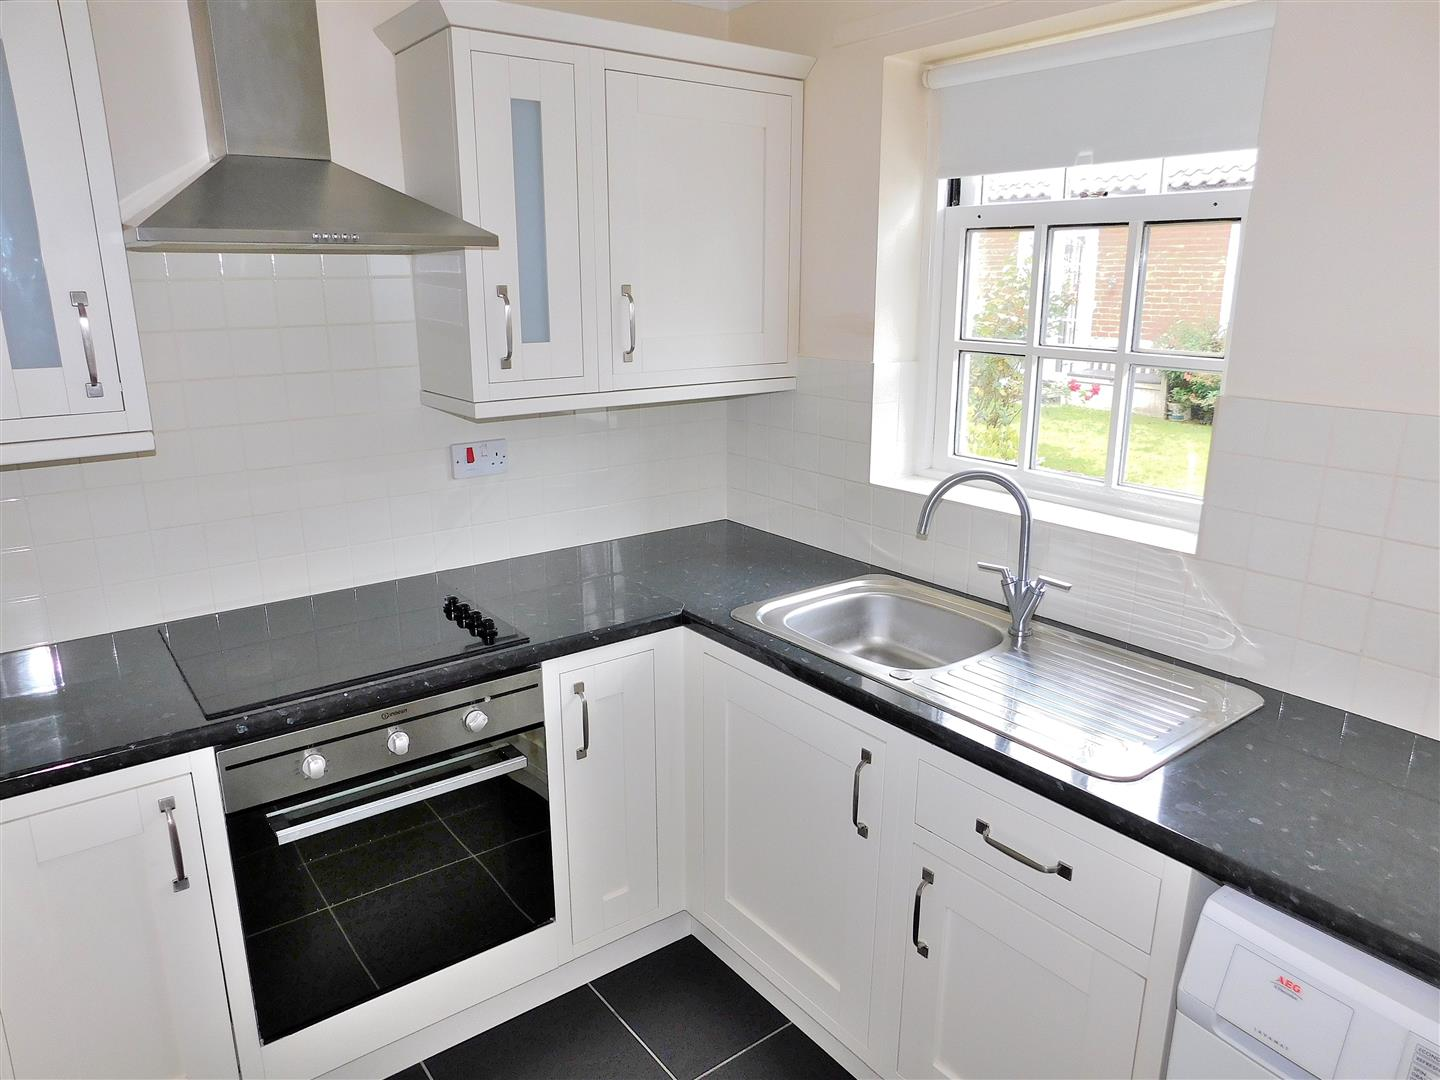 2 bed flat for sale in King's Lynn, PE30 1EG  - Property Image 5